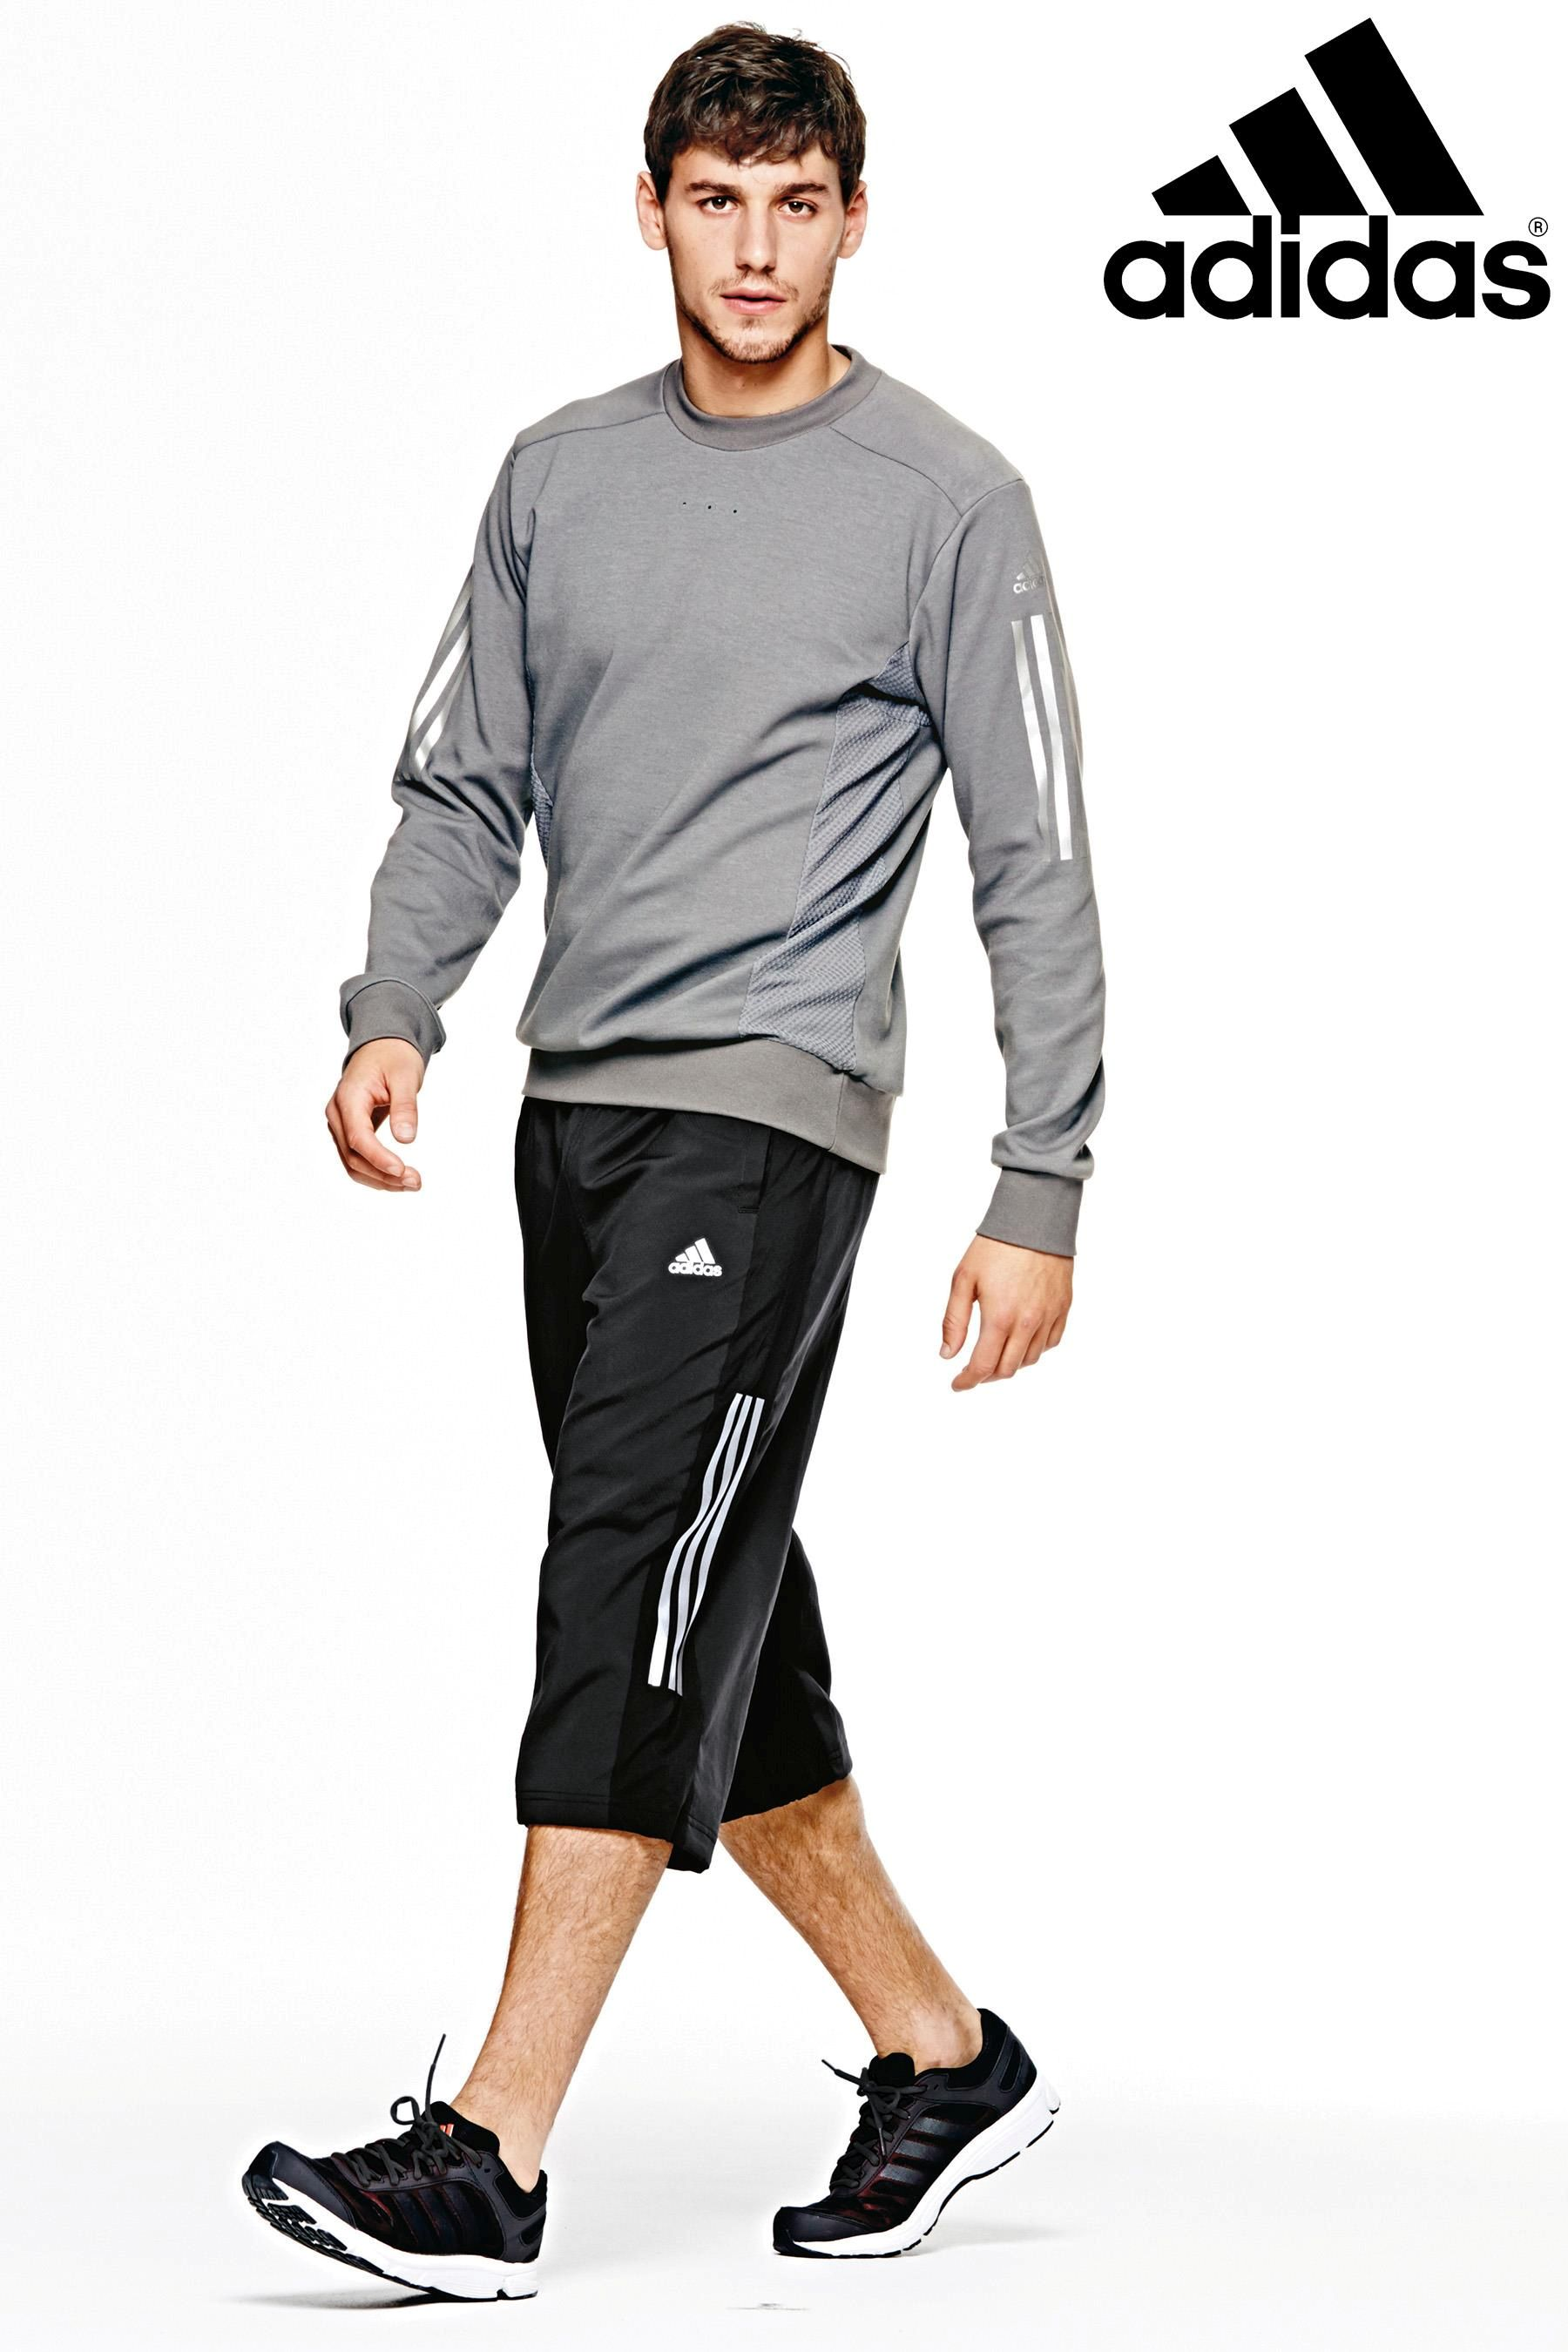 AllSportsWearUSA offers today's best outdoor and fitness brands at amazing, affordable prices. From running shoes to capris, we have gear for people of all ages.